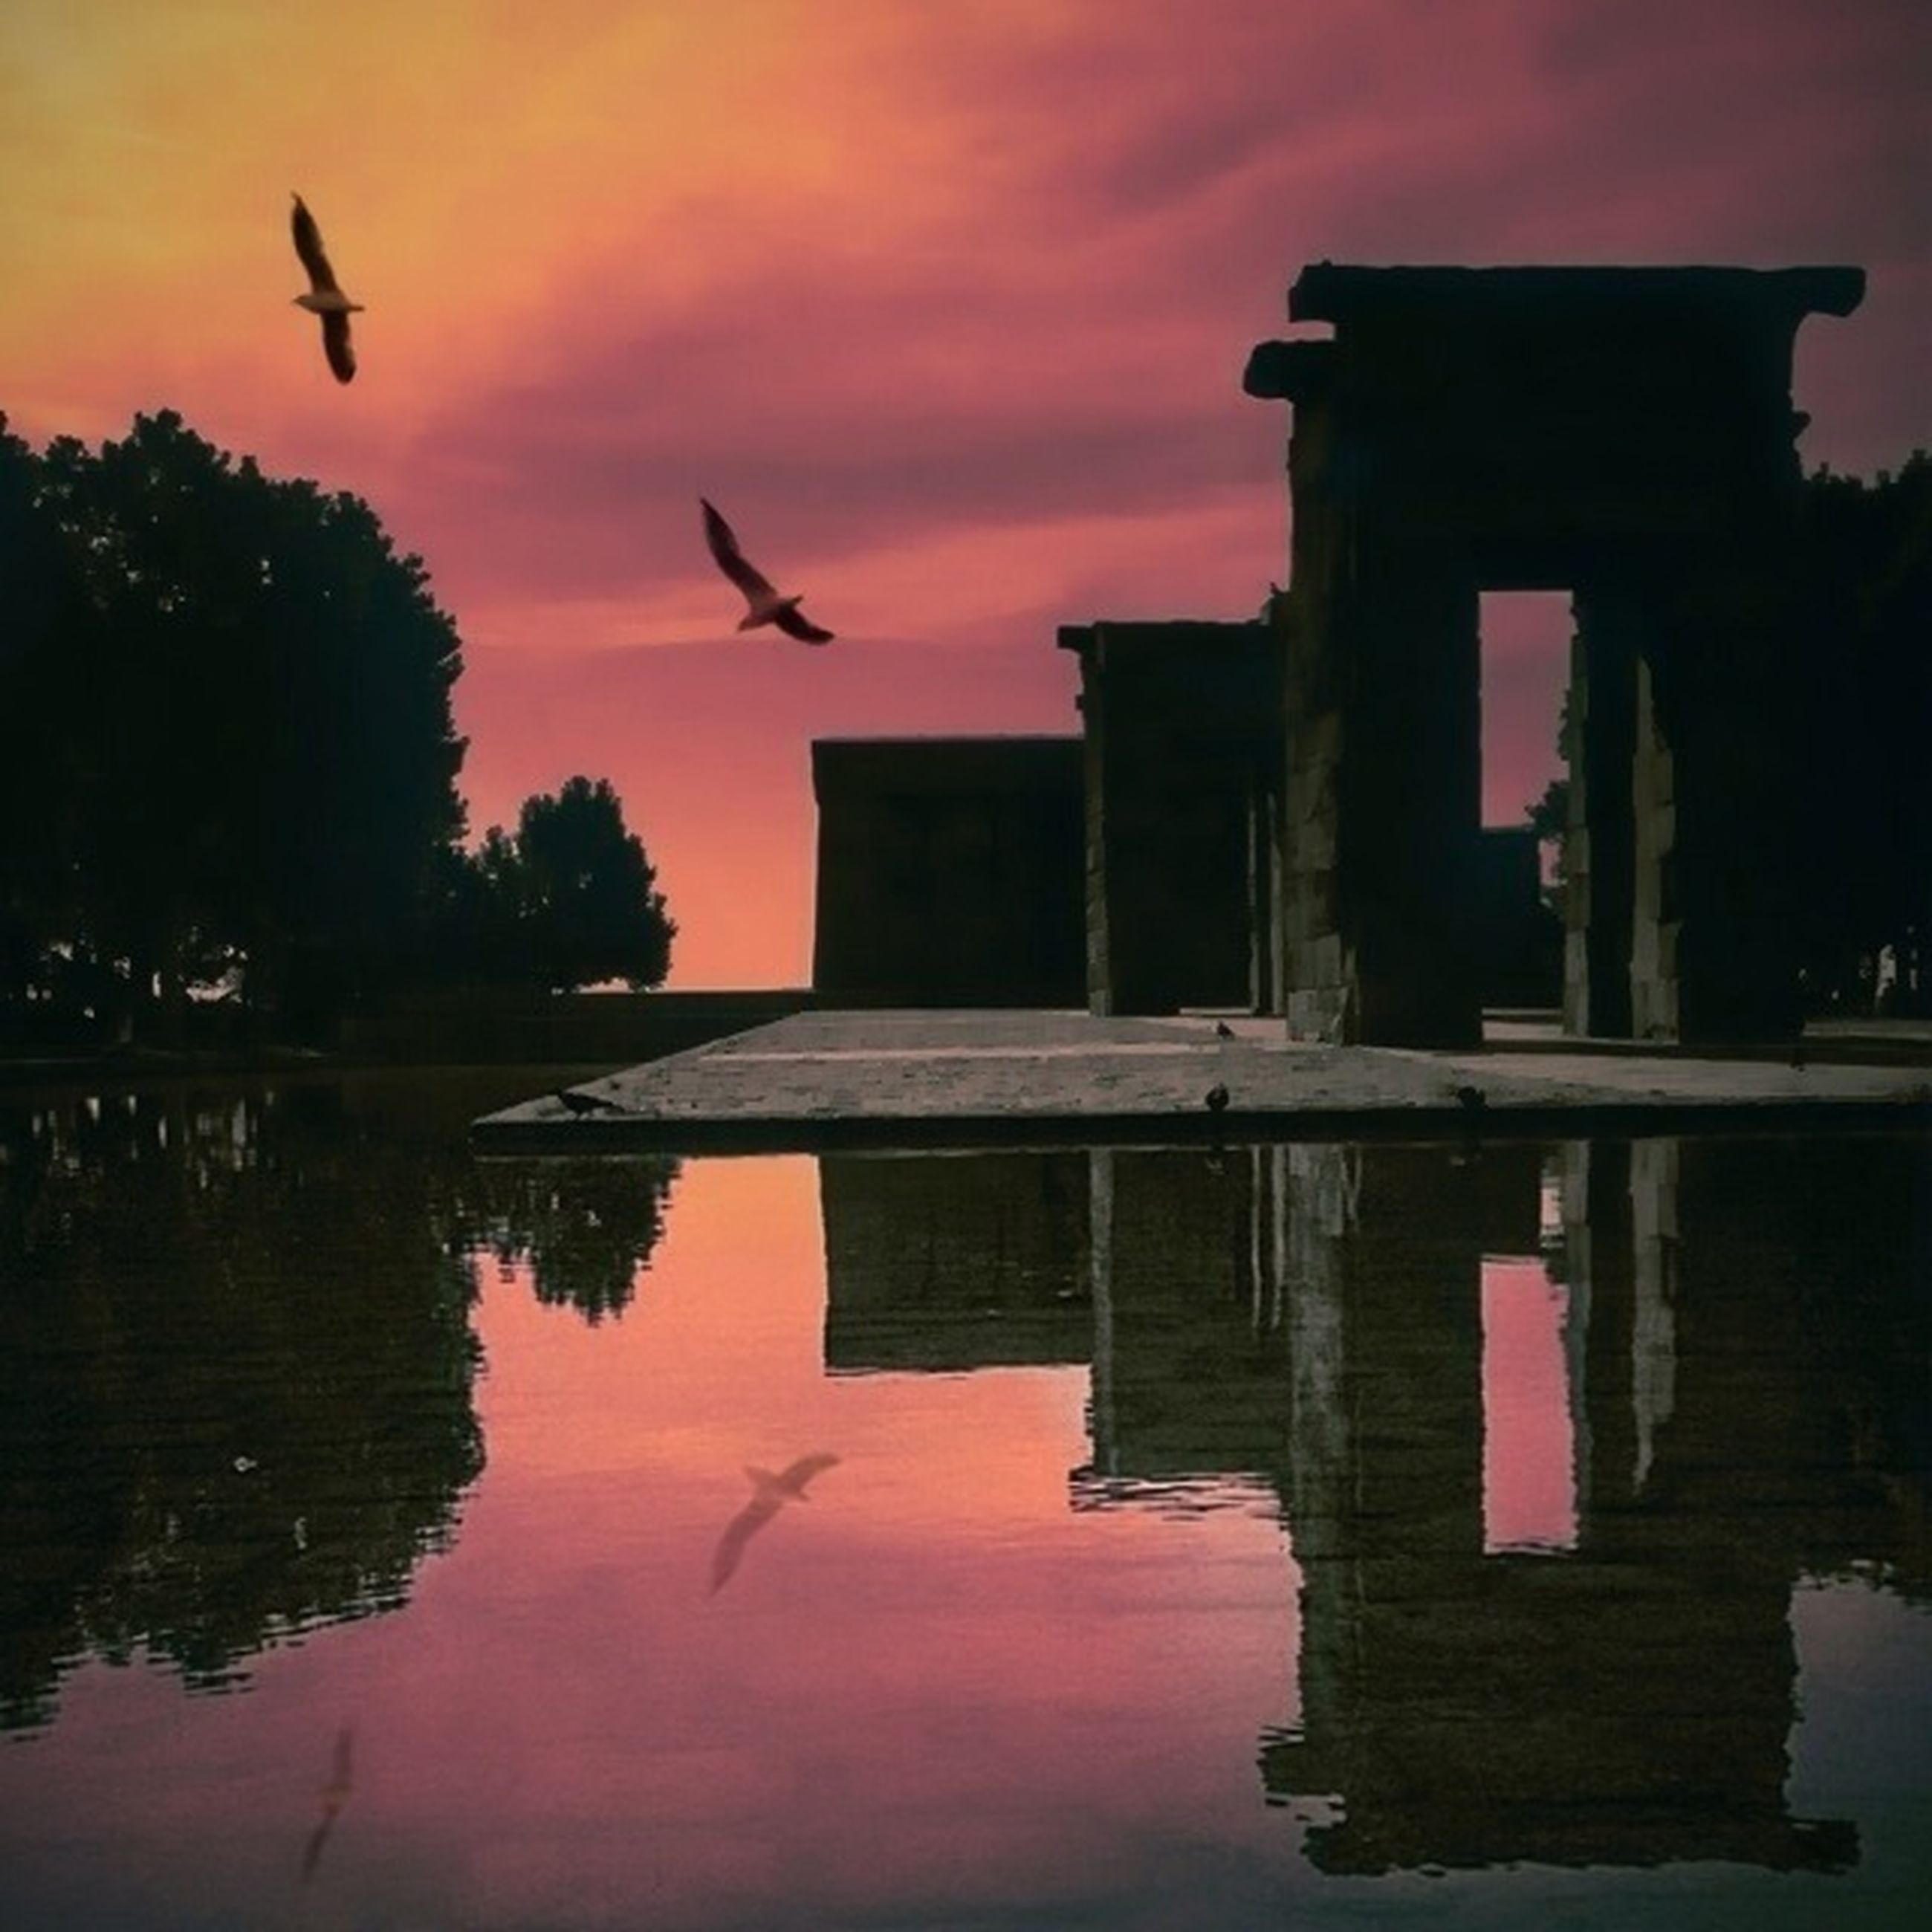 bird, flying, animal themes, animals in the wild, wildlife, built structure, architecture, building exterior, water, spread wings, sky, sunset, mid-air, reflection, flock of birds, one animal, silhouette, waterfront, seagull